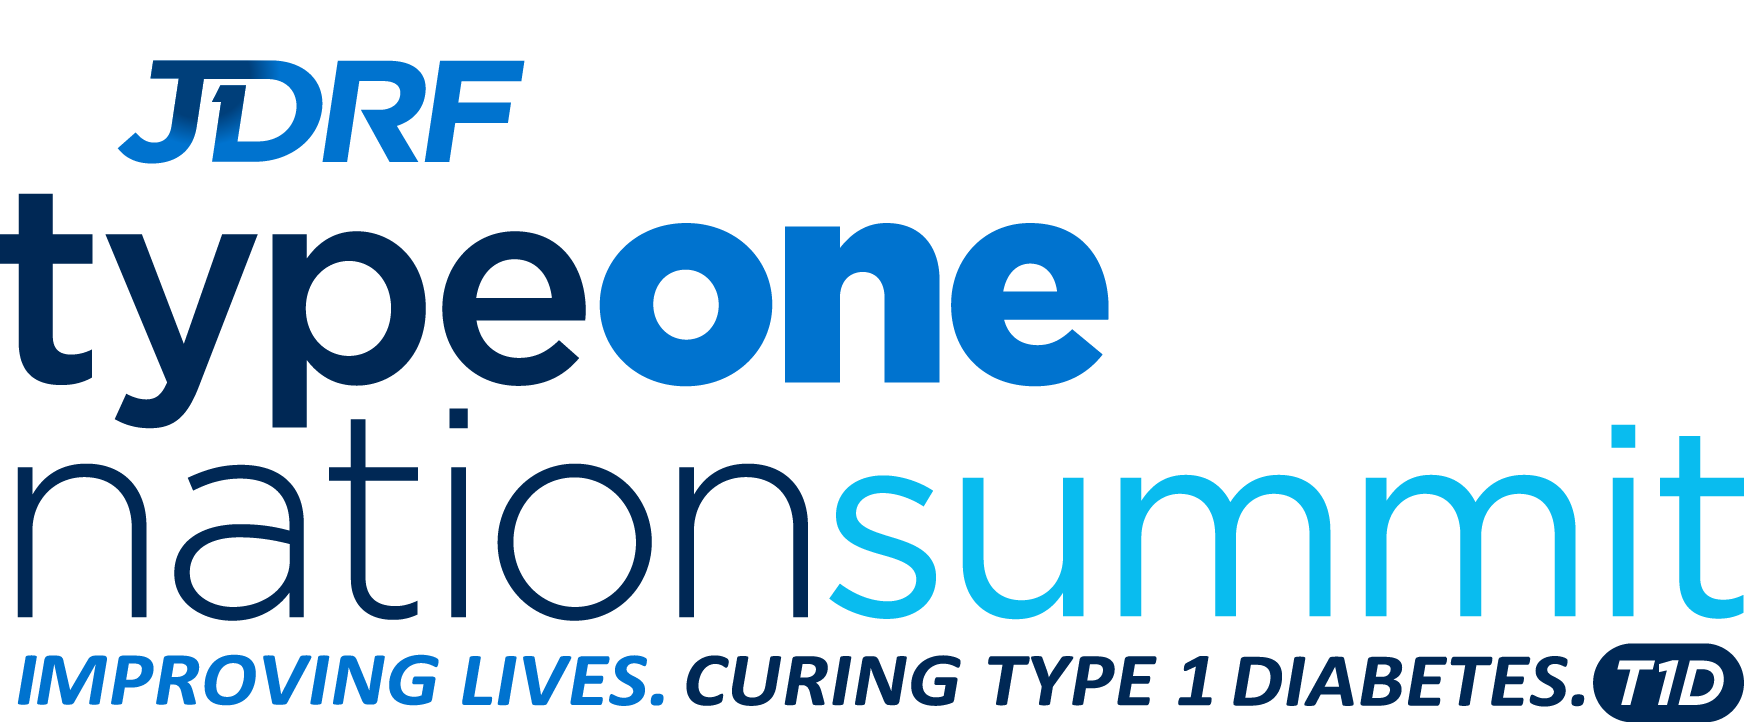 typeonenation summit central. Diabetes clipart certified